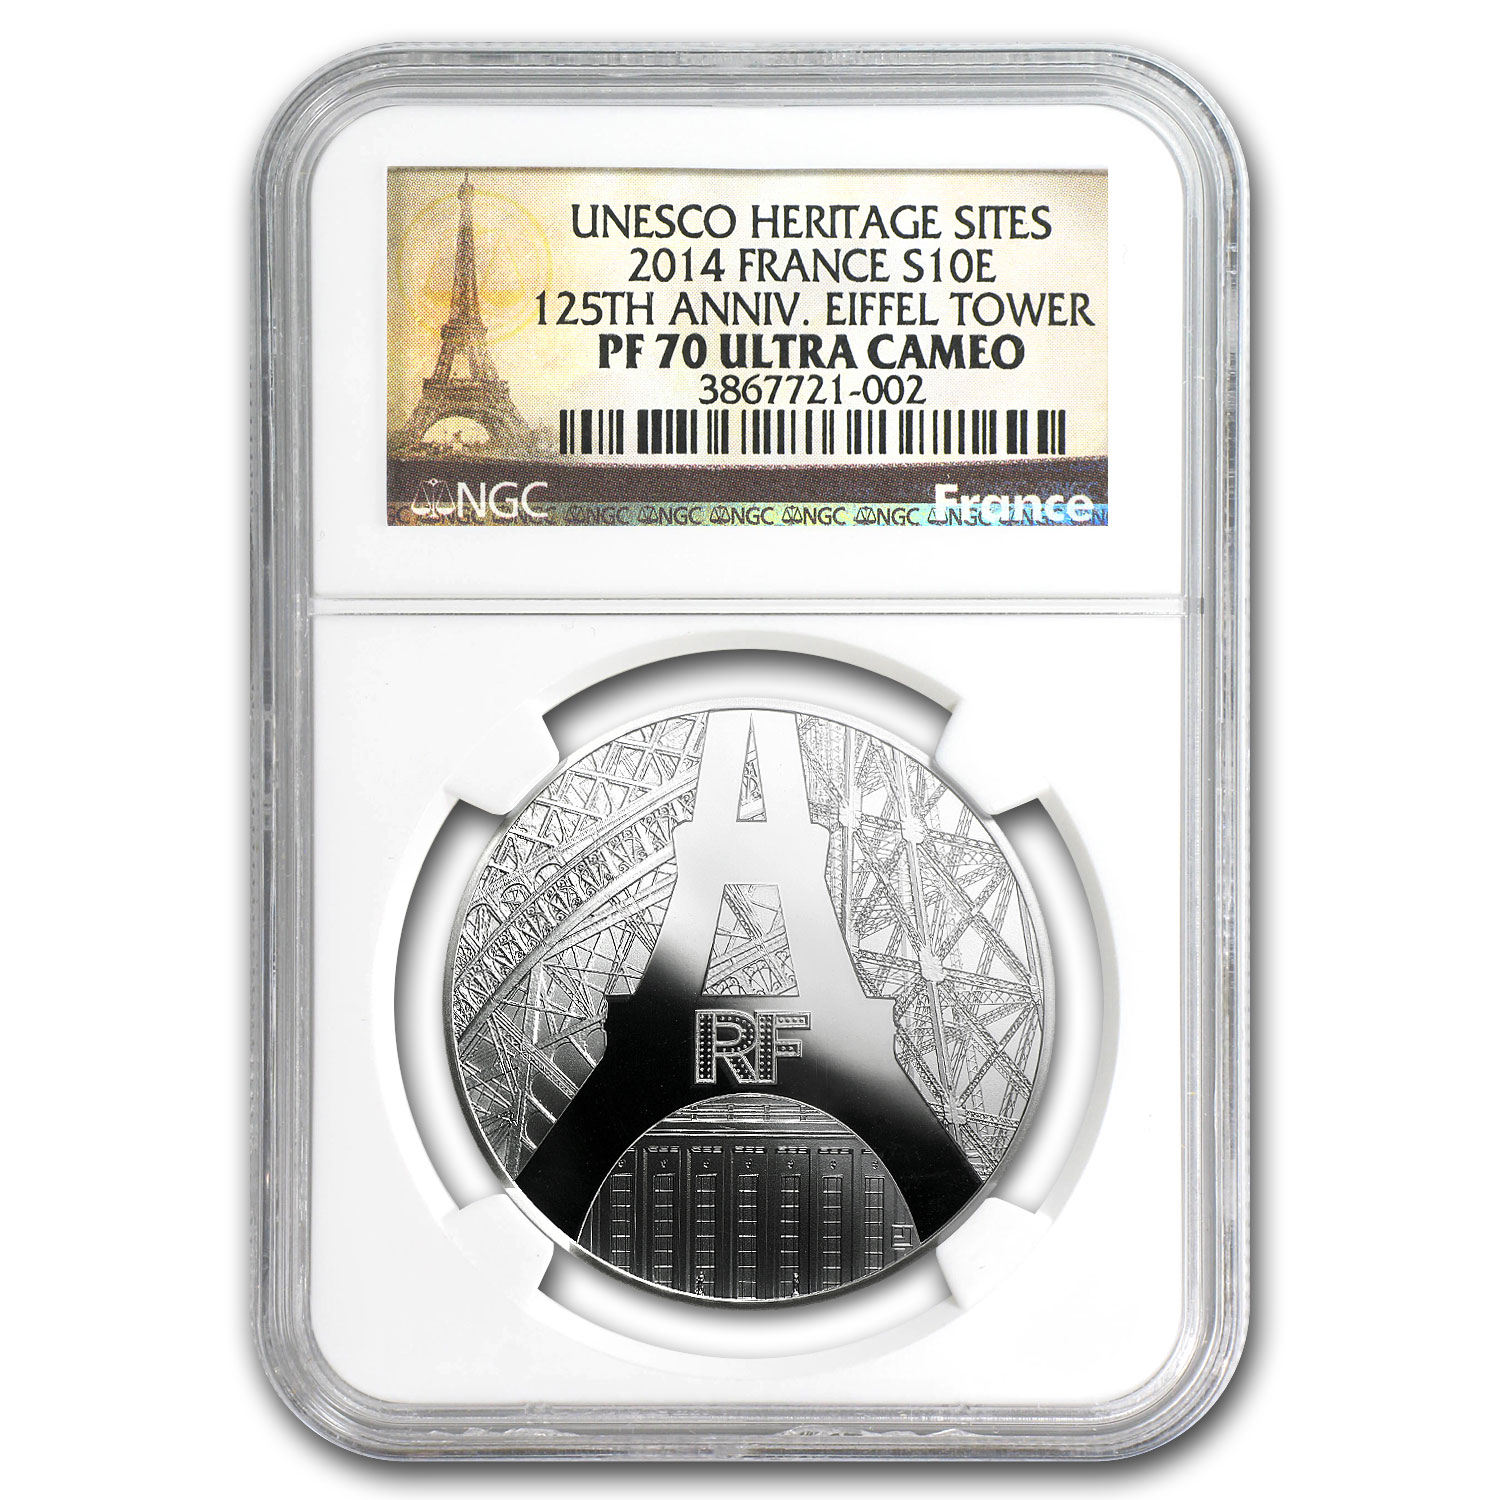 2014 France Silver €10 Eiffel Tower/Palais de Chaillot PF-70 NGC